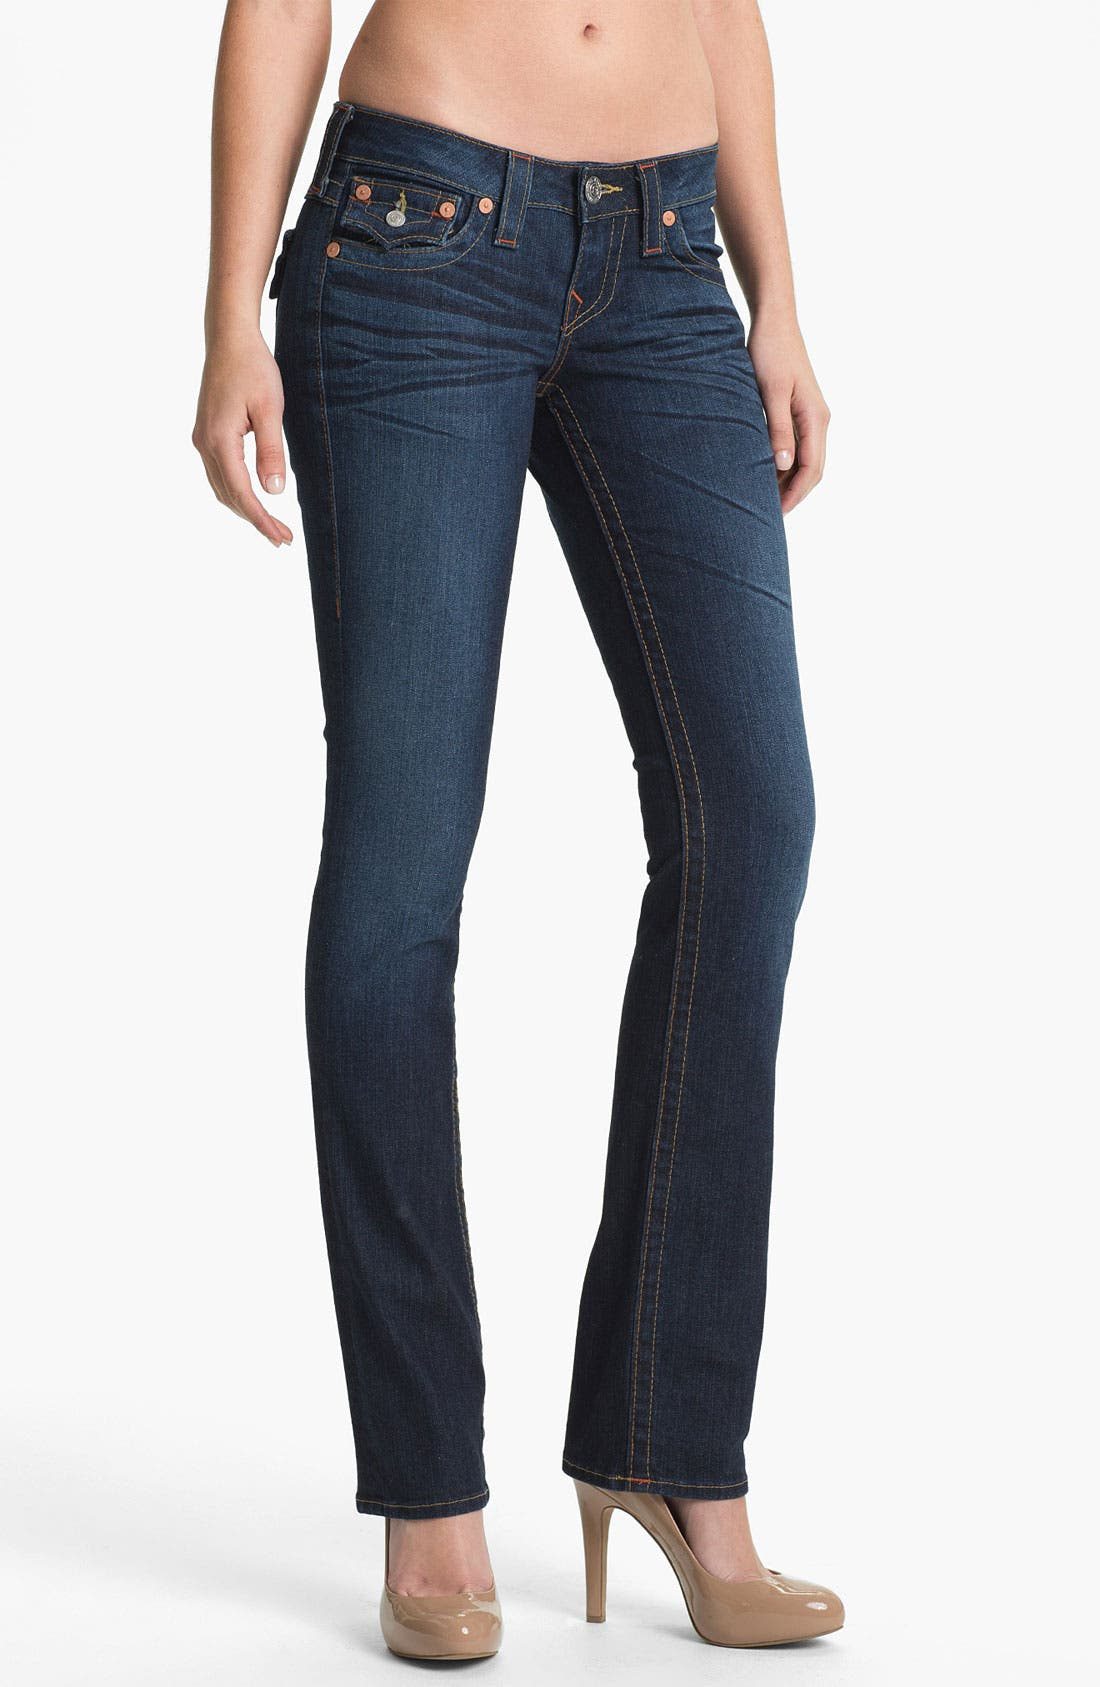 Main Image - True Religion Brand Jeans 'Billy' Straight Leg Stretch Jeans (Last Chance)